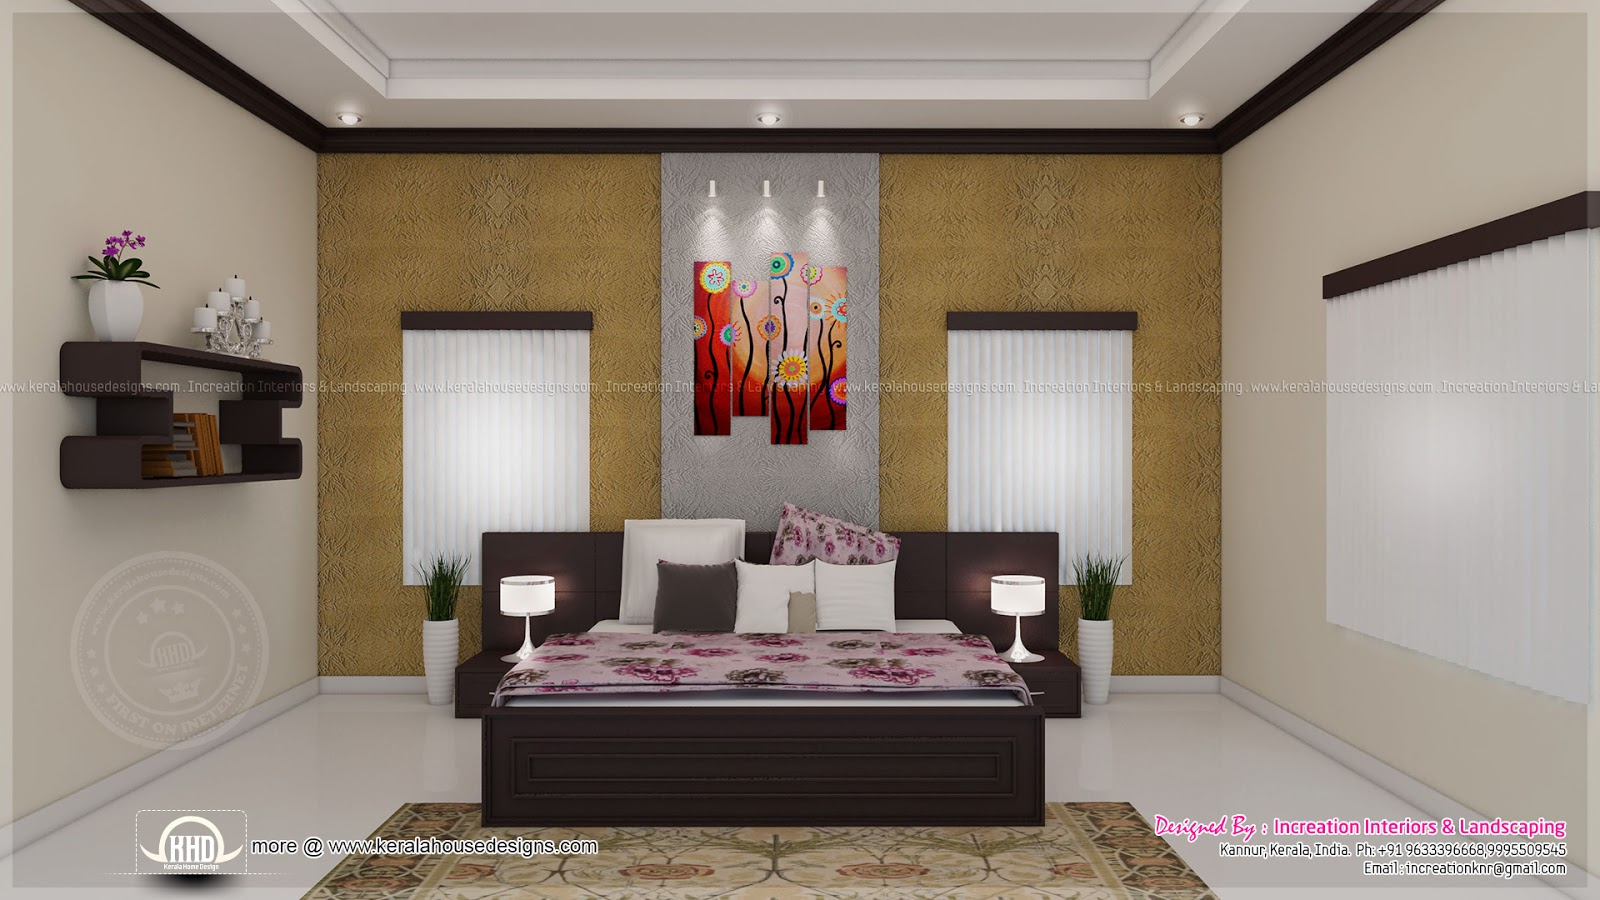 House interior ideas in 3d rendering kerala home design for Interior decoration pics